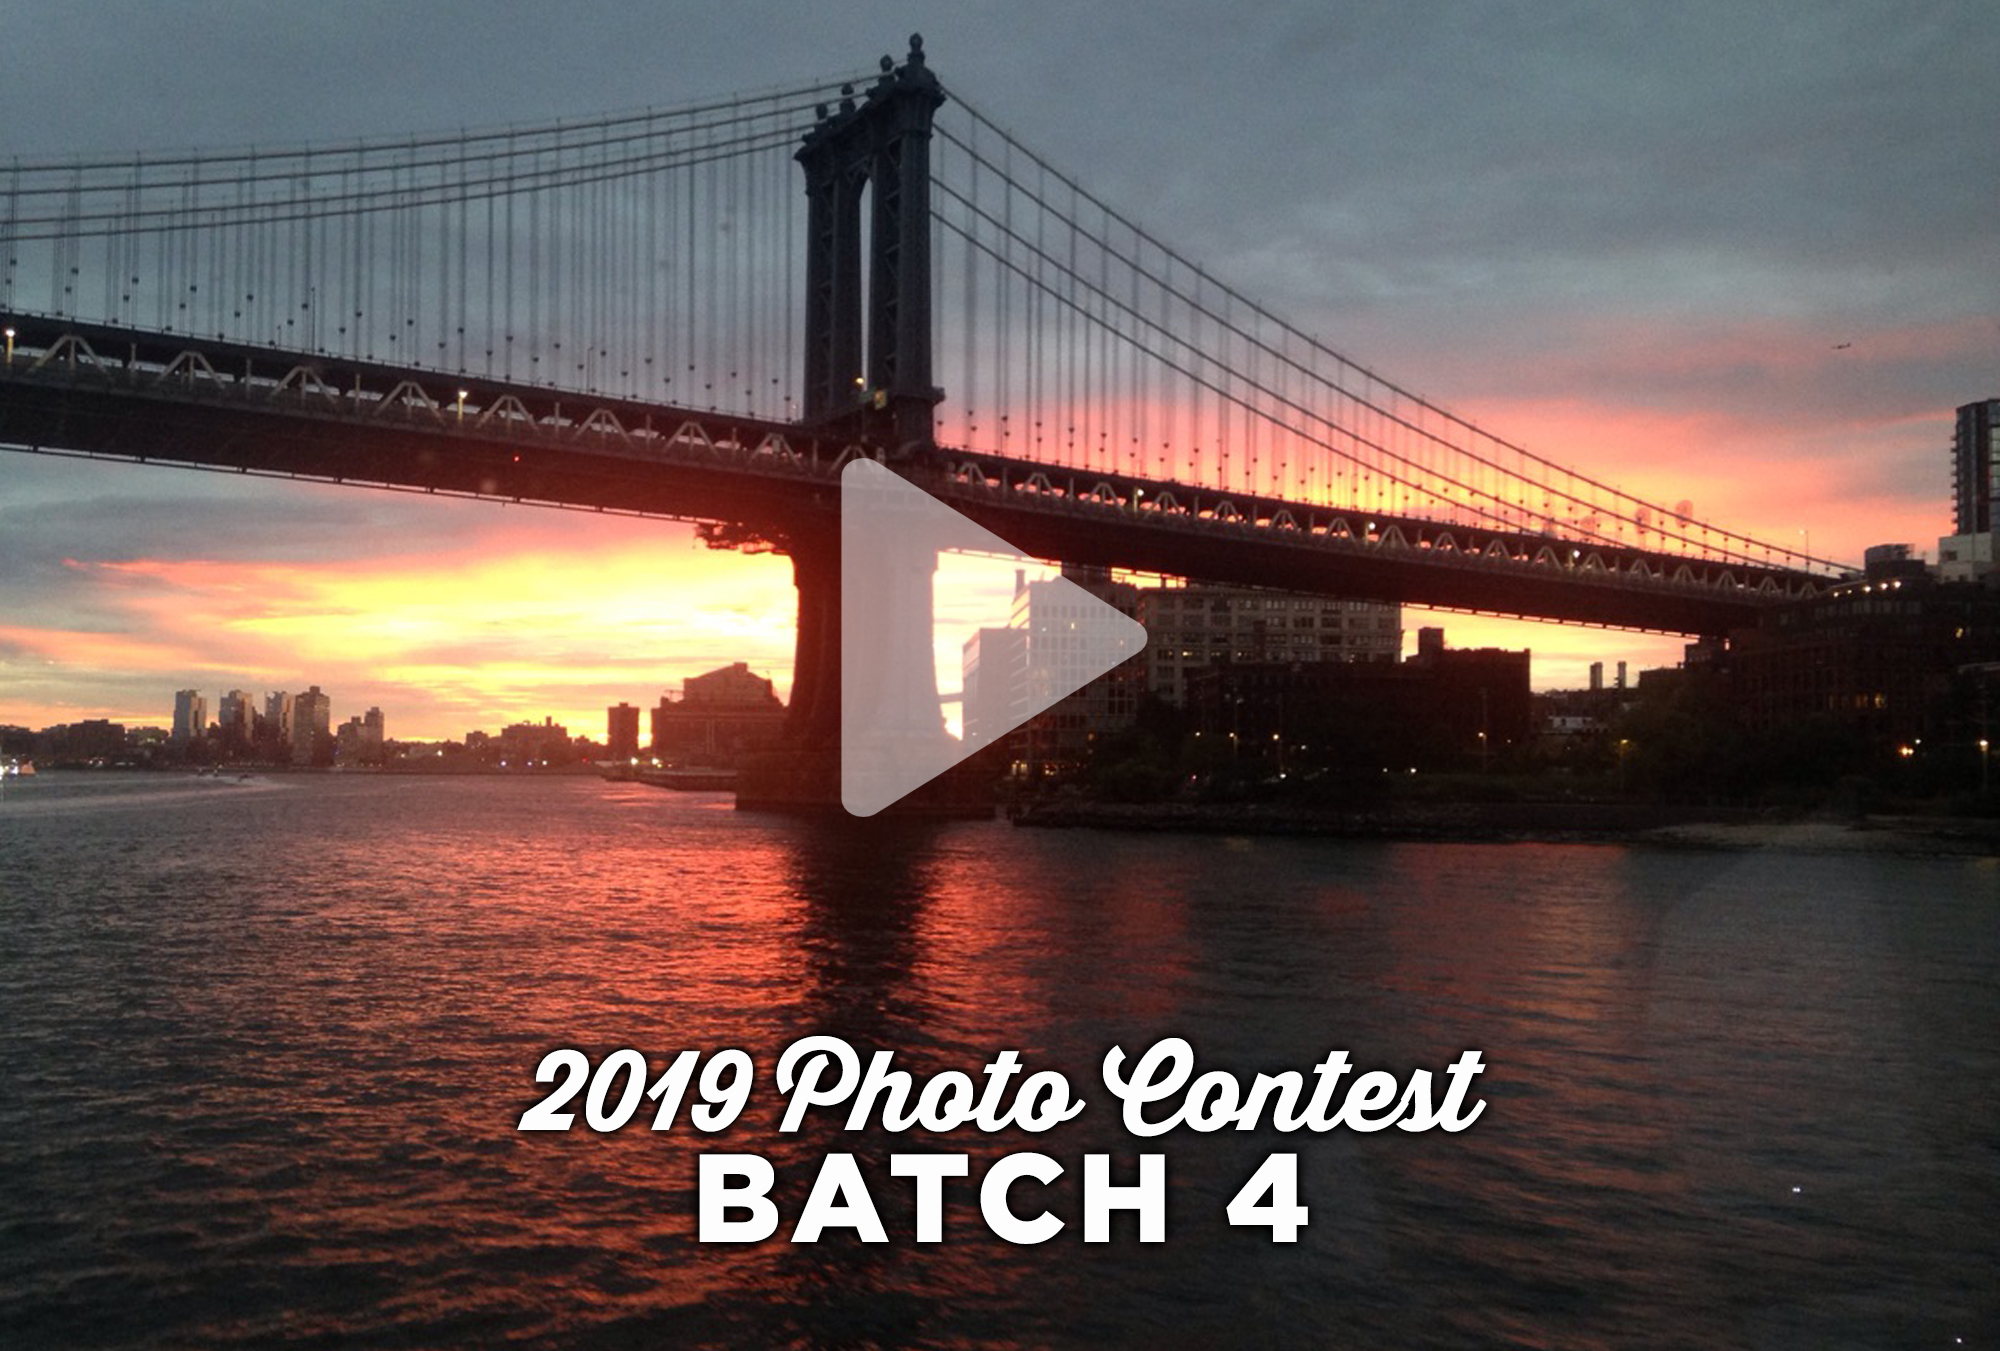 Here's the 4th batch of really great photo contest submissions…enjoy!